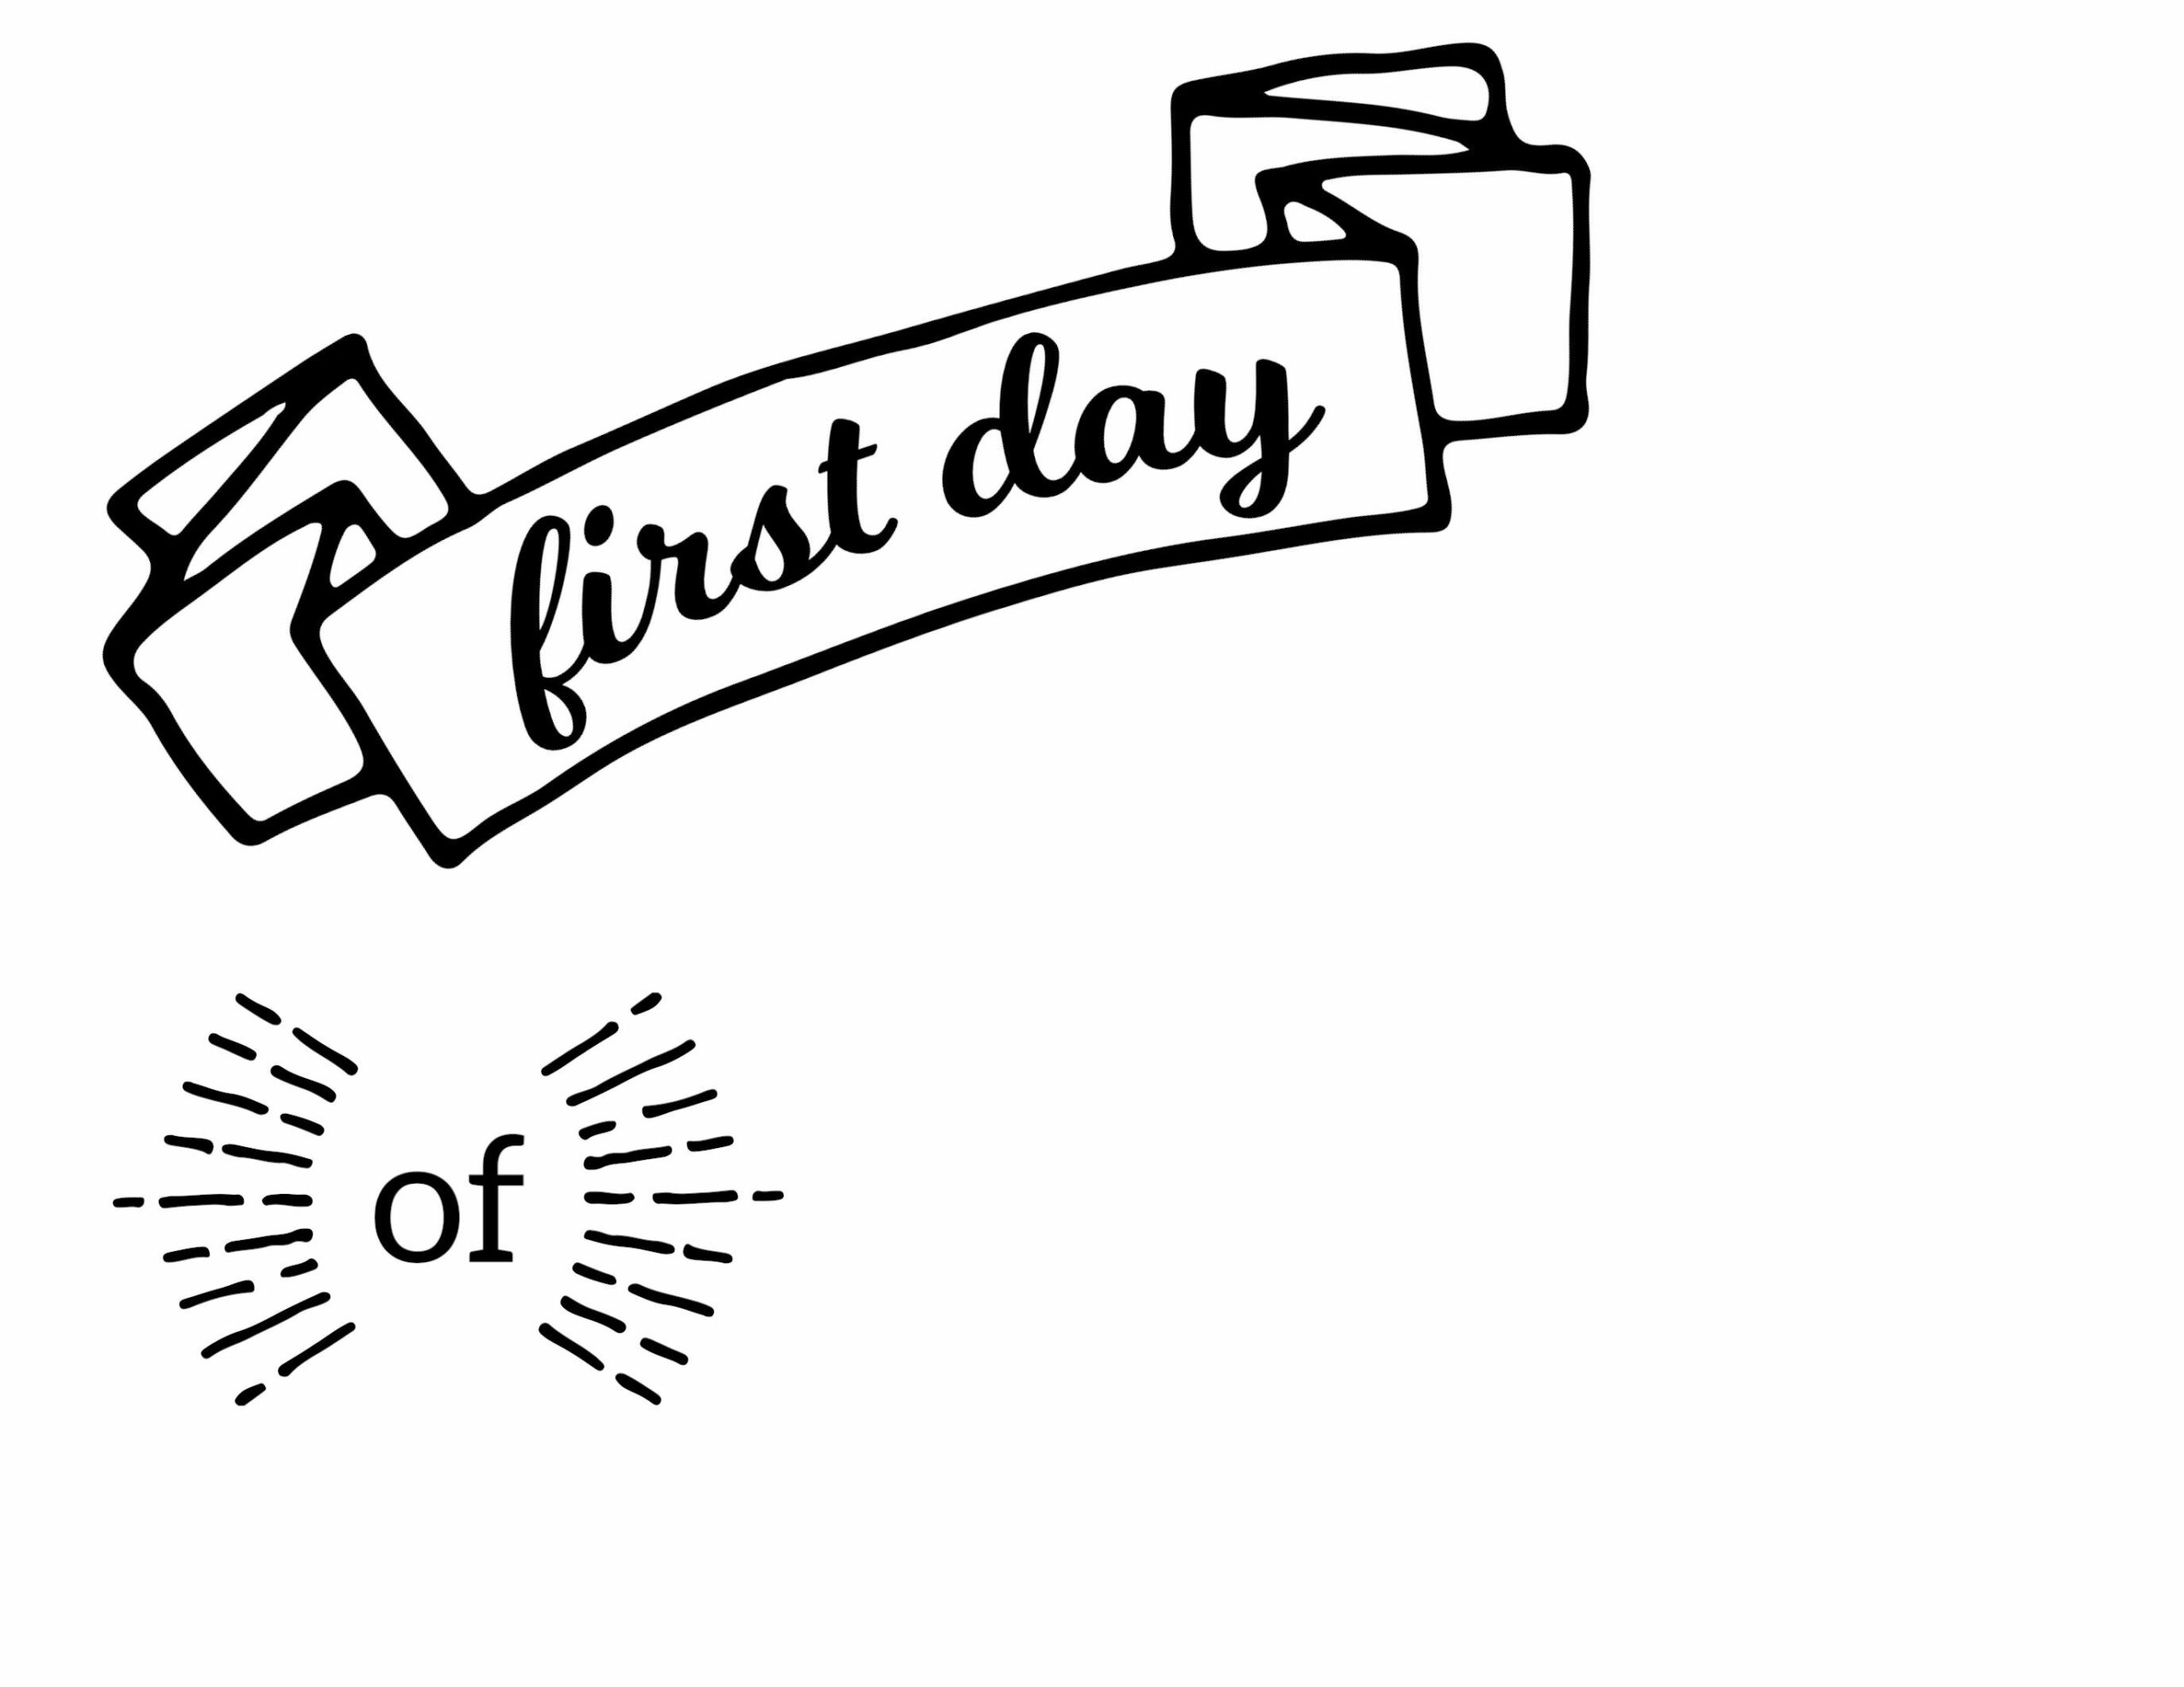 Crayola Coloring Pages About First Day Of School